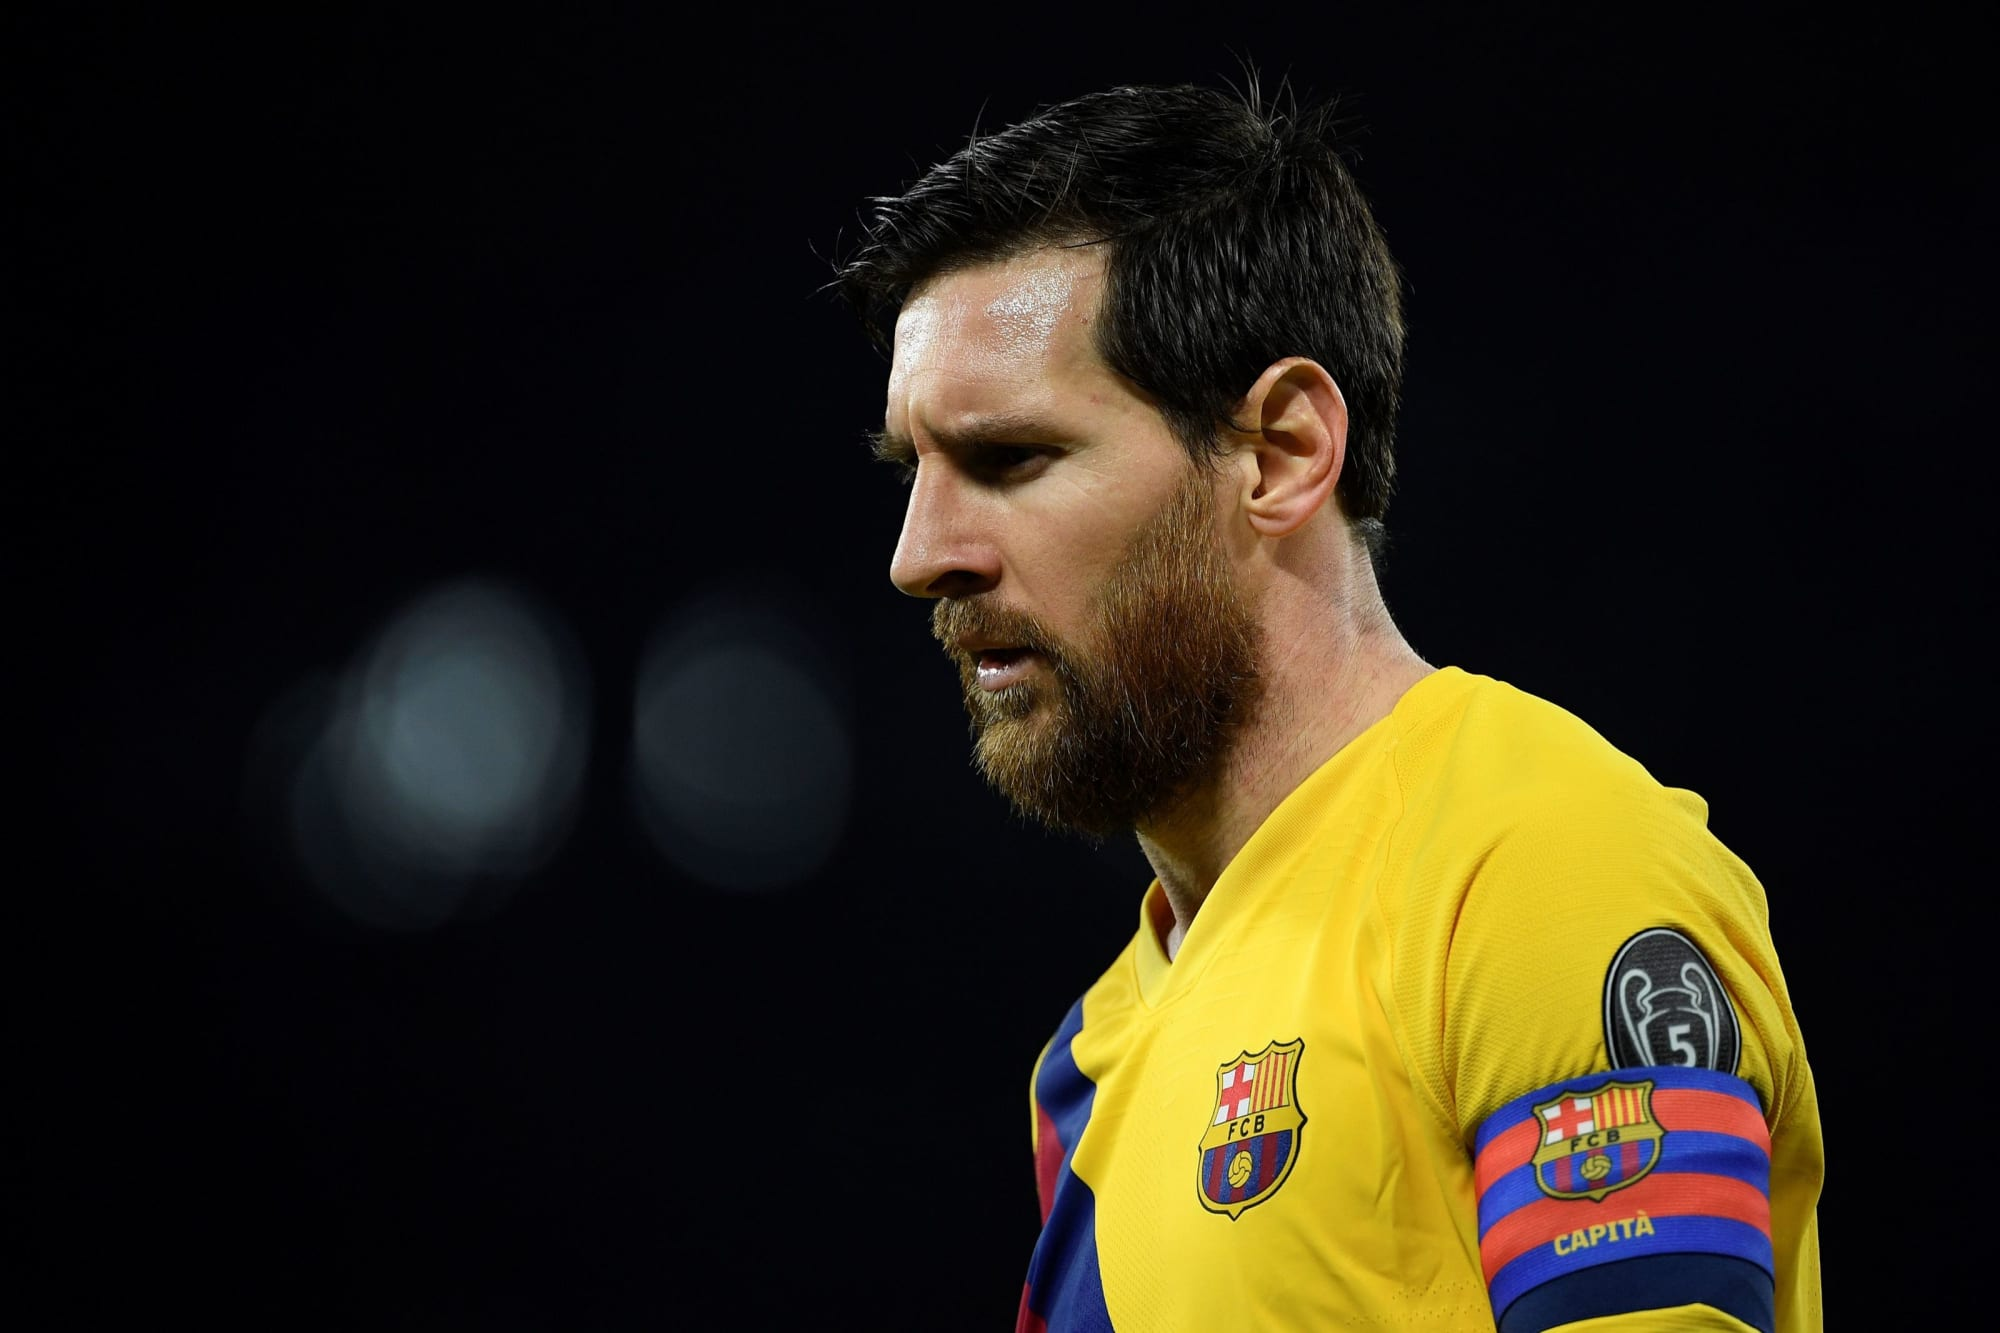 Lionel Messi betrays Barcelona for Real Madrid as he loses his patience